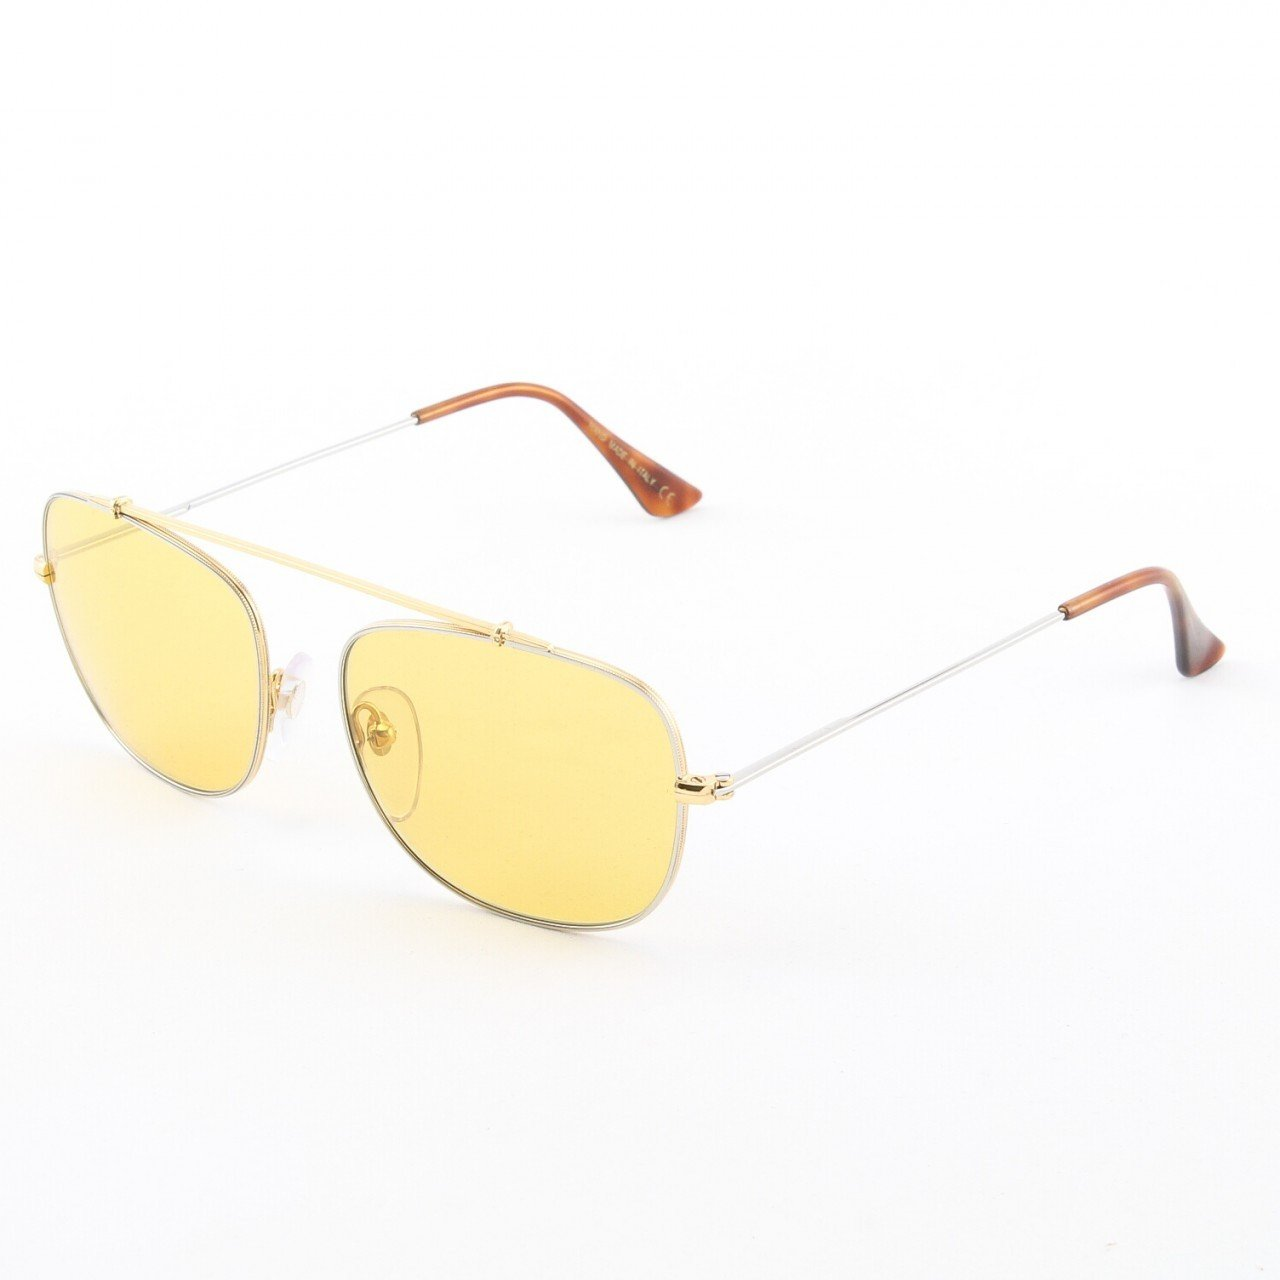 Super Primo 718/1M Sunglasses Gold Chrome with Yellow Zeiss Lenses by RETROSUPERFUTURE